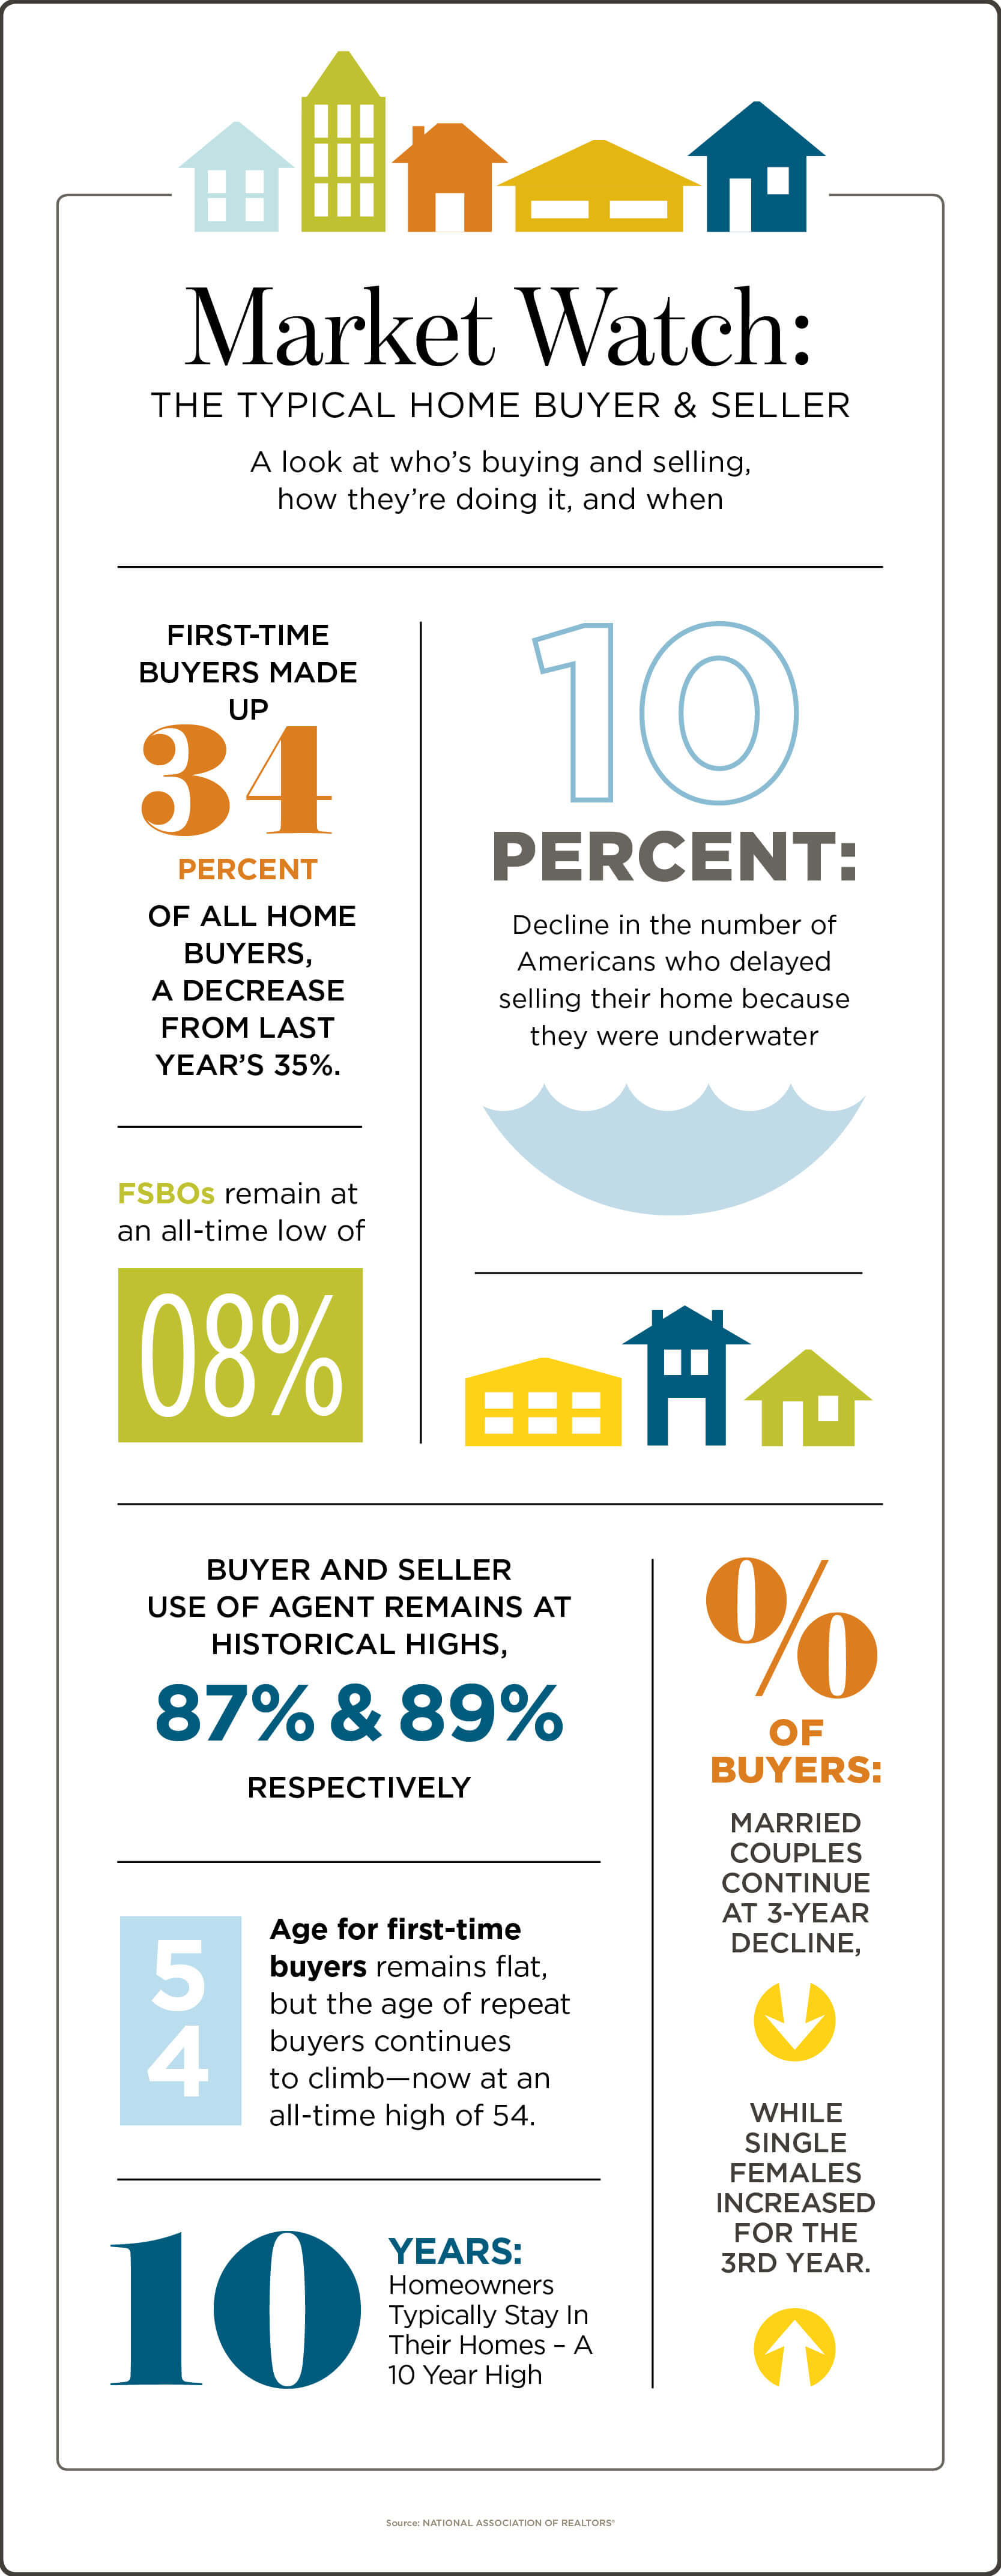 Market Watch: The Typical Home Buyer & Seller